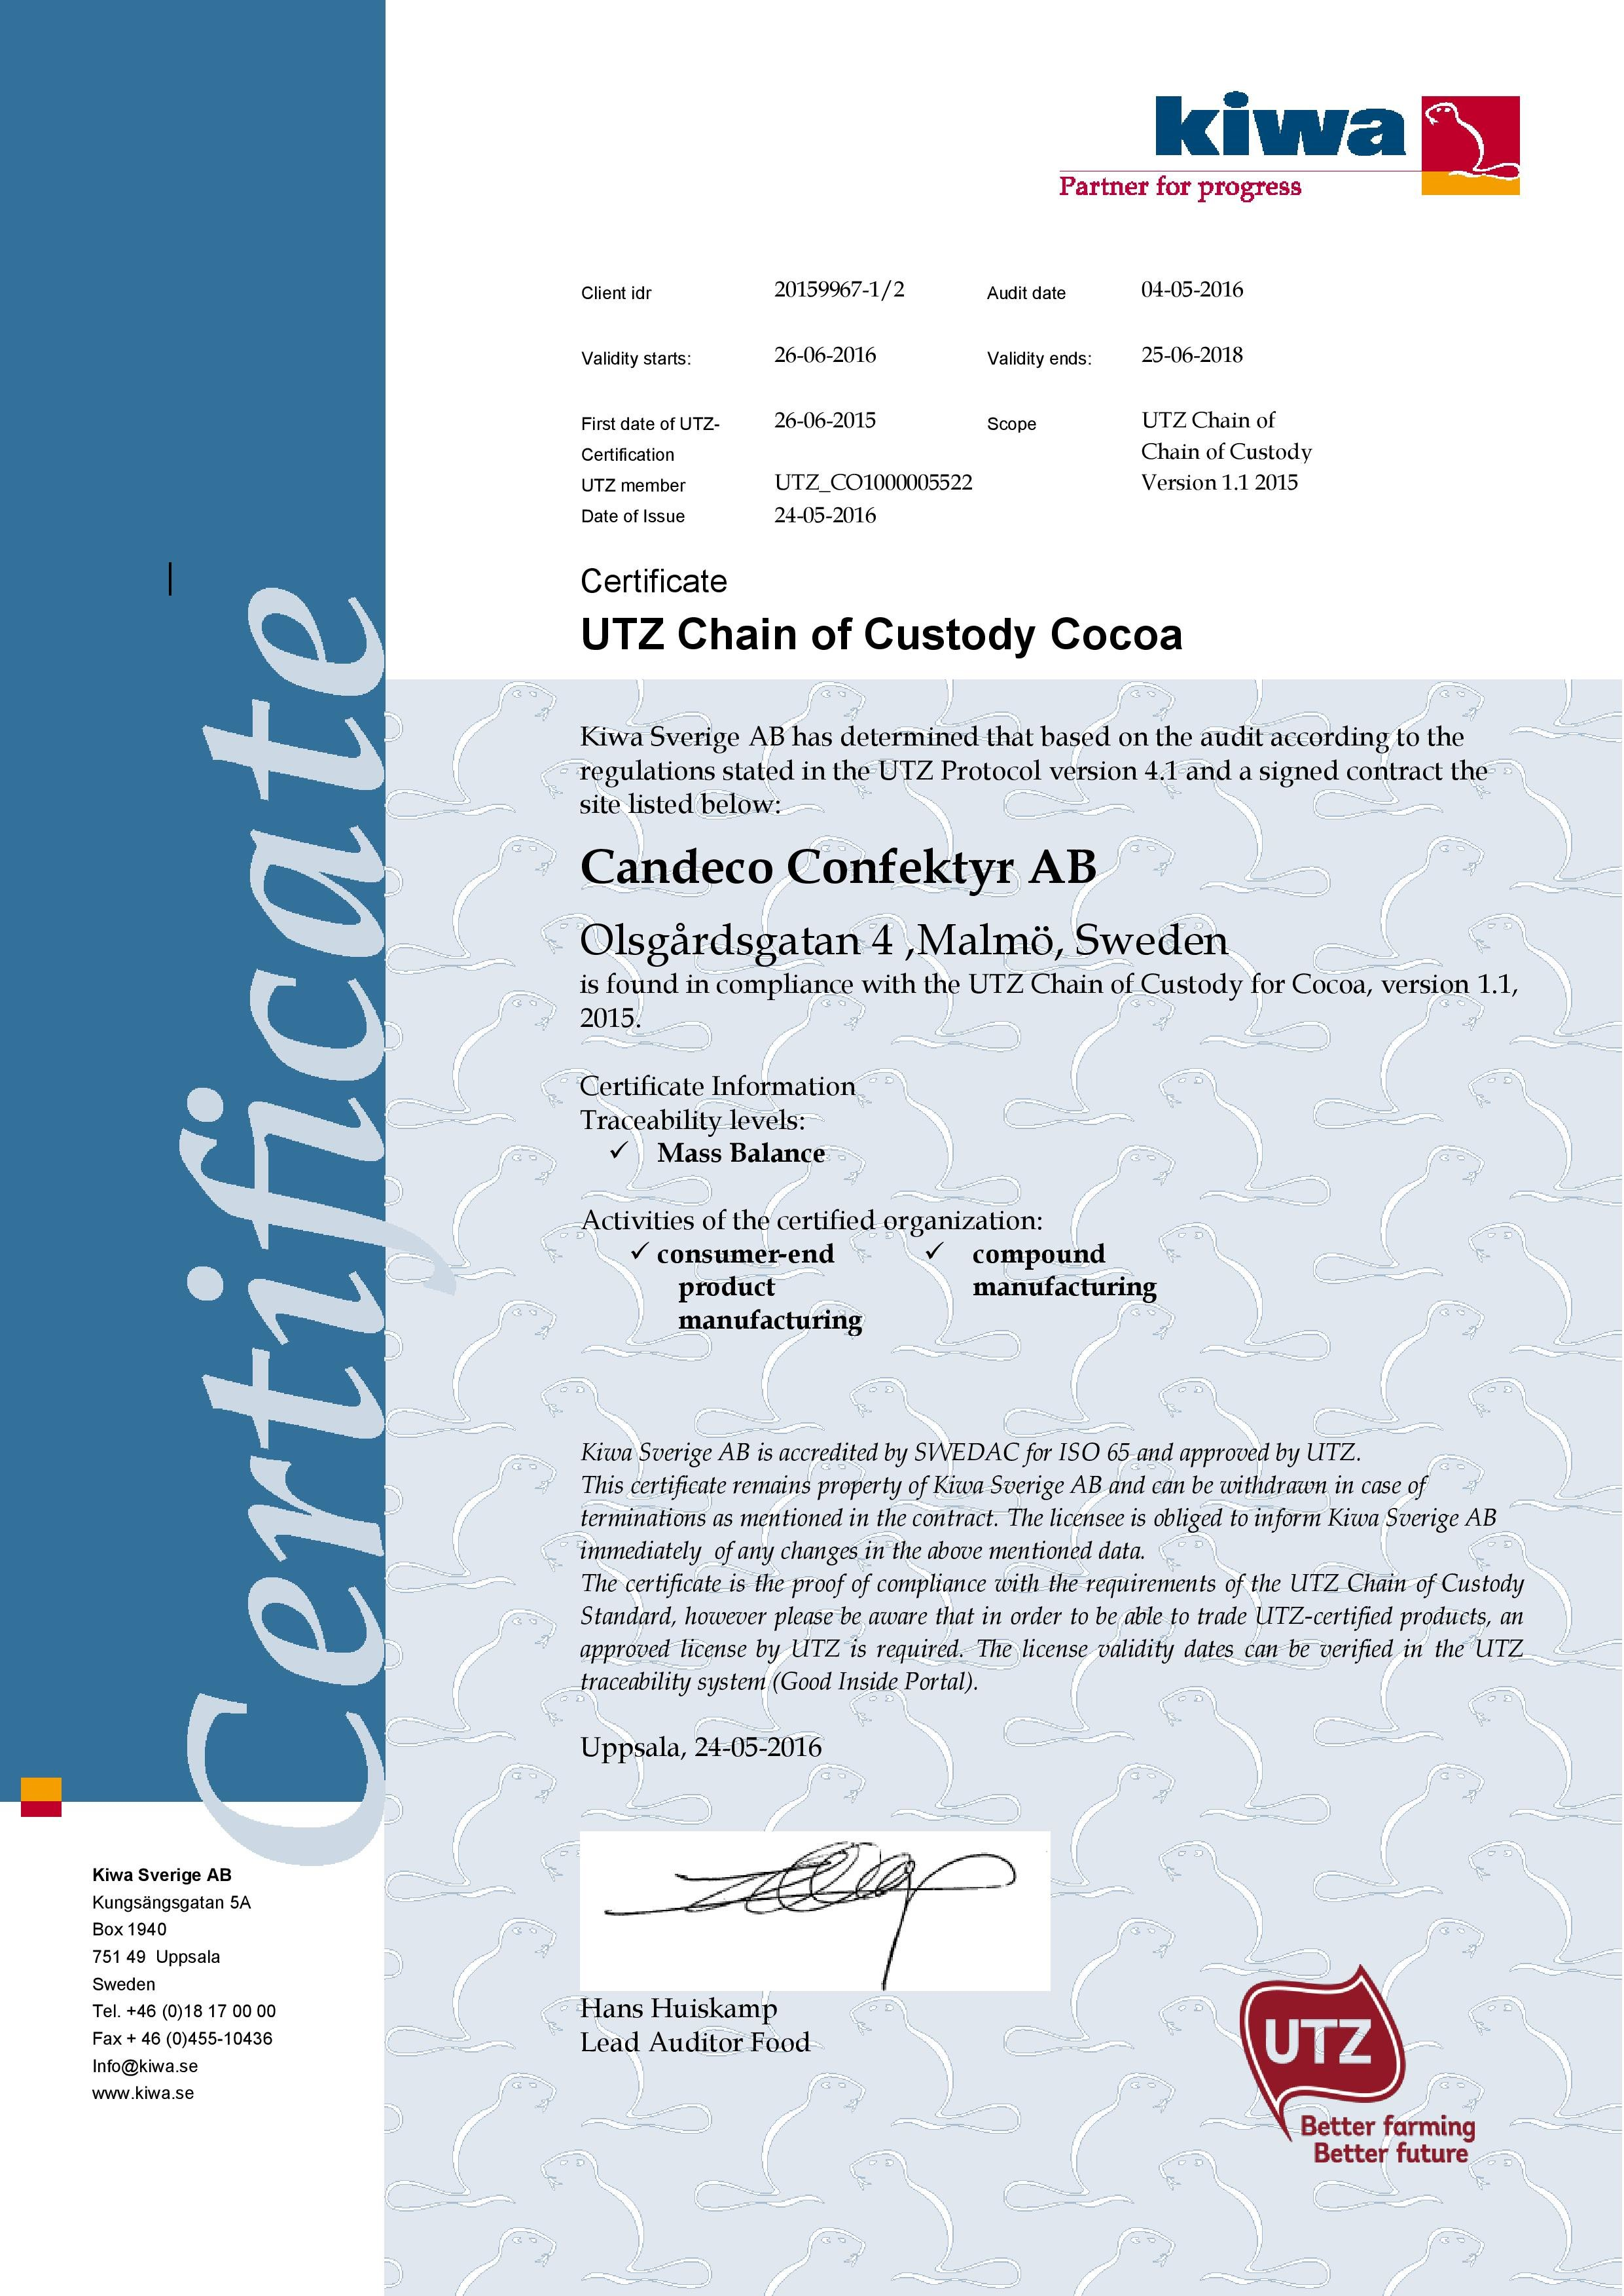 2016_Candeco_UTZcert_cocoa_to_2018-06-25-page-001.jpg